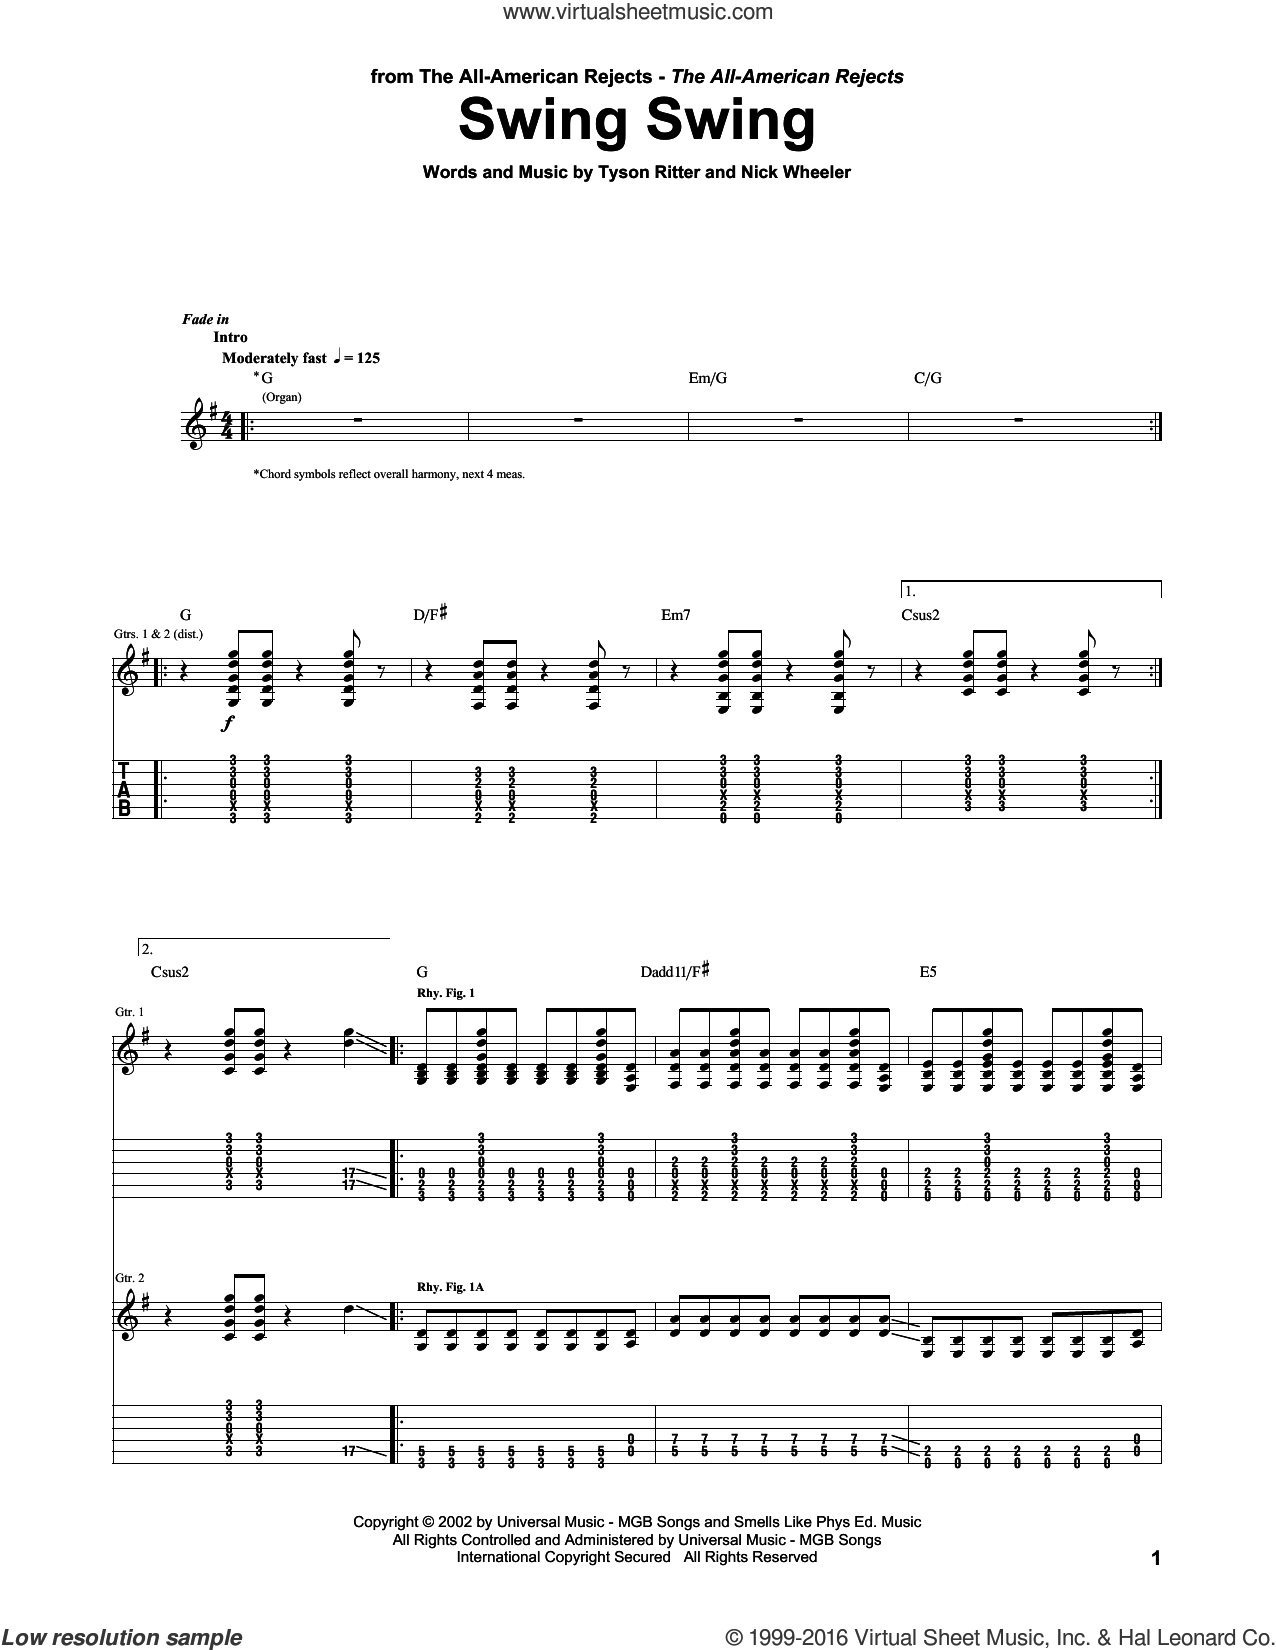 Swing Swing sheet music for guitar (tablature) by Tyson Ritter. Score Image Preview.